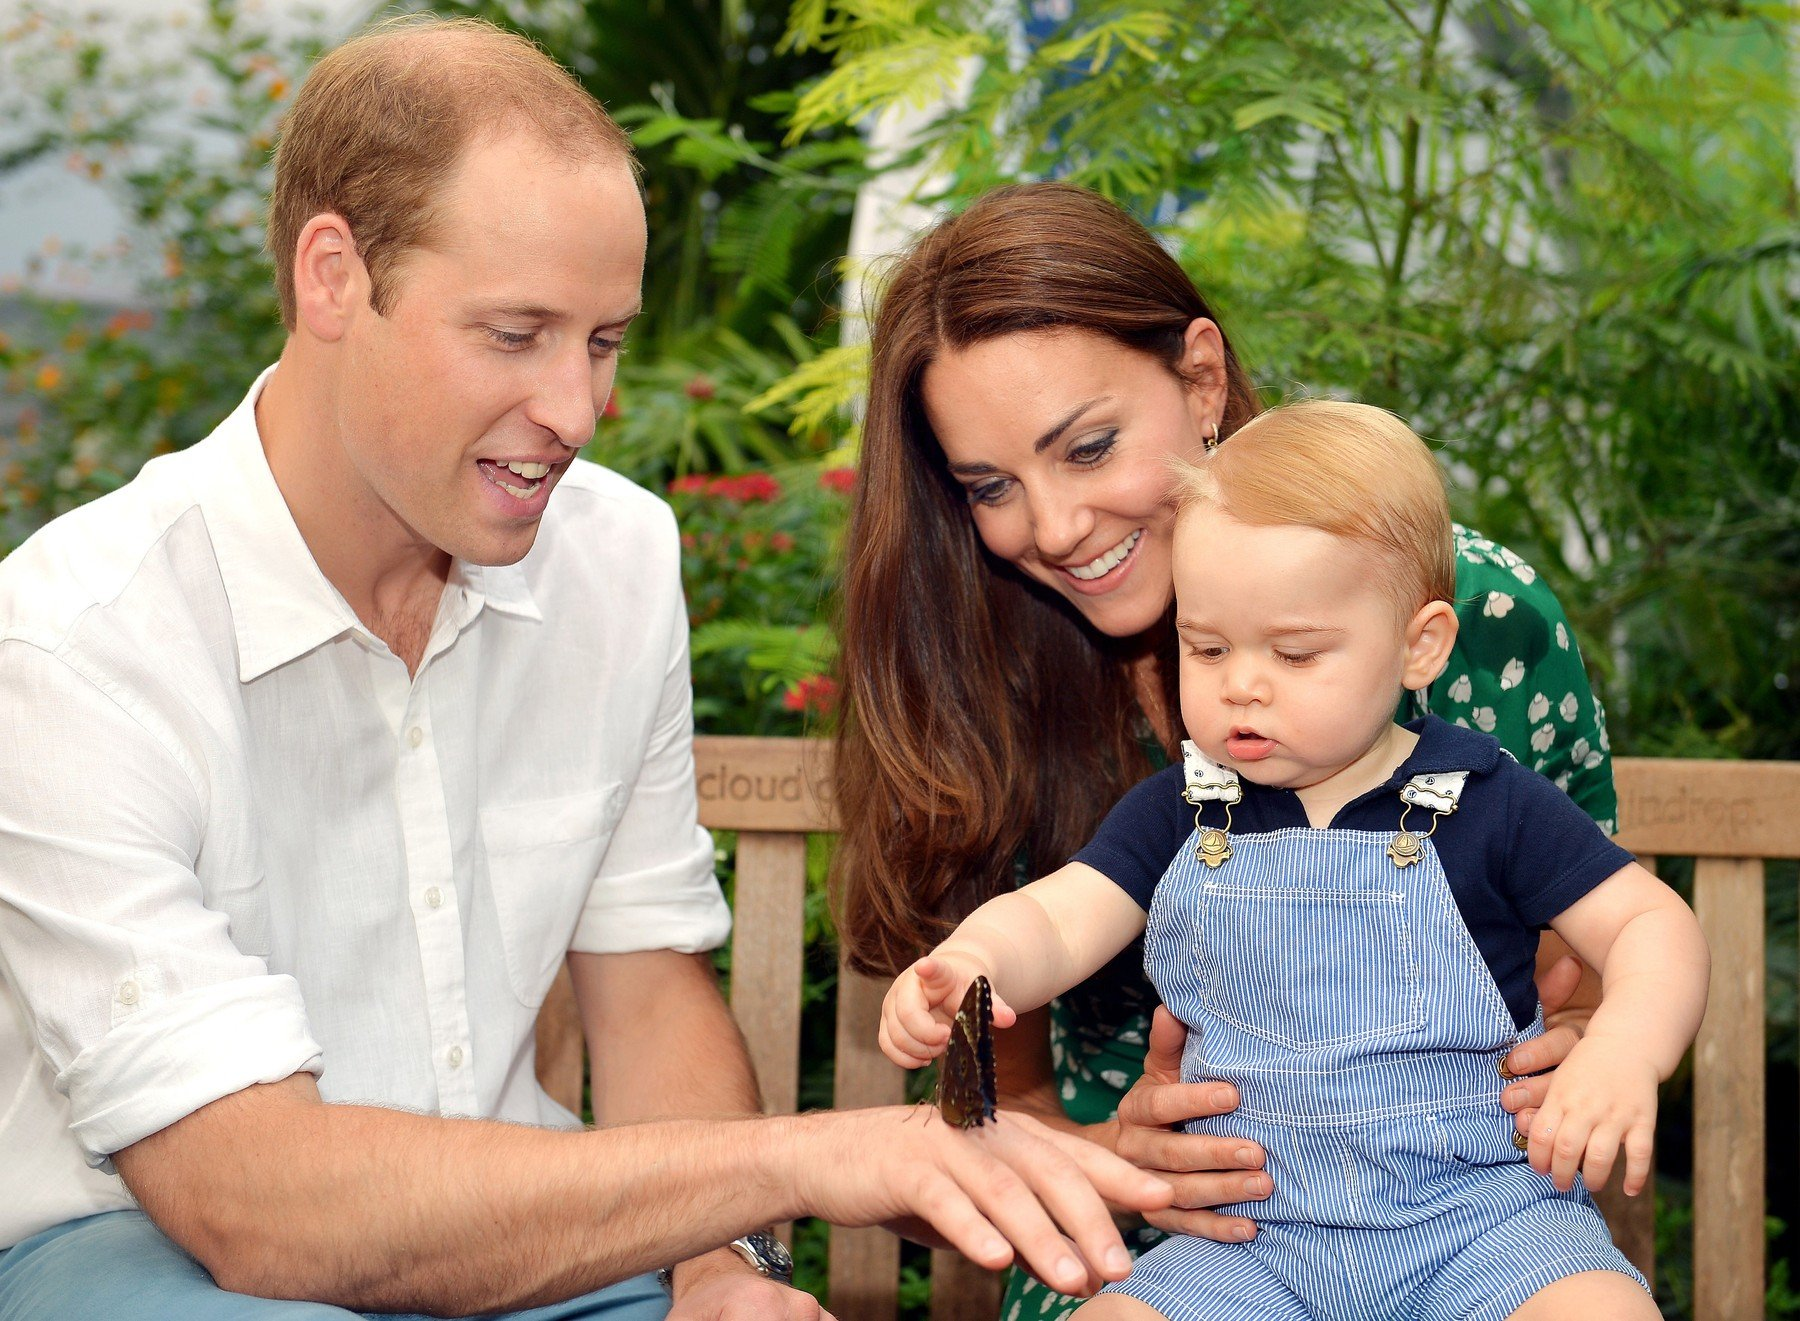 This photo dated Wednesday July 2, 2014, was taken to mark Prince George's first birthday and shows the Duke and Duchess of Cambridge and the Prince during a visit to the Sensational Butterflies exhibition at the Natural History Museum, London., Image: 199570494, License: Rights-managed, Restrictions: NO UK USE  FOR 48 HOURS - Fee Payable Upon Reproduction - For queries contact Photoshot - sales@photoshot.com  London: +44 (0) 20 7421 6000  Florida: +1 239 689 1883  Berlin: +49 (0) 30 76 212 251, Model Release: no, Credit line: Profimedia, UPPA News